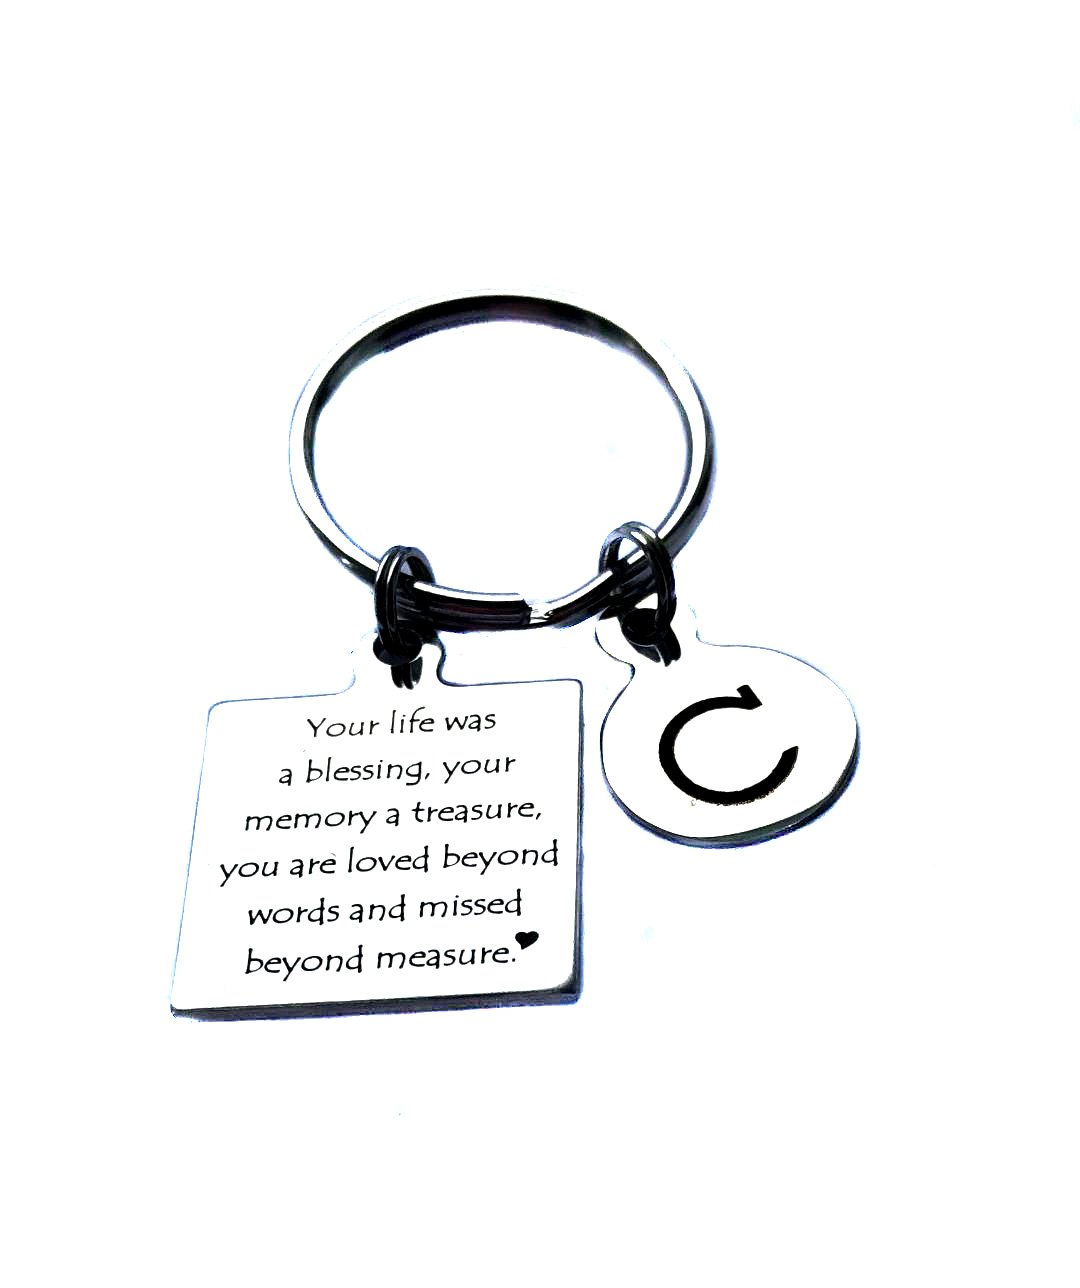 Heart Projects Custom Stainless Steel Your Life Was A Blessing, Your Memory A Treasure, You Are Loved Beyond Words And Missed Beyond Measure Initial Charm Keychain, Bag Charm, Memorial Gift